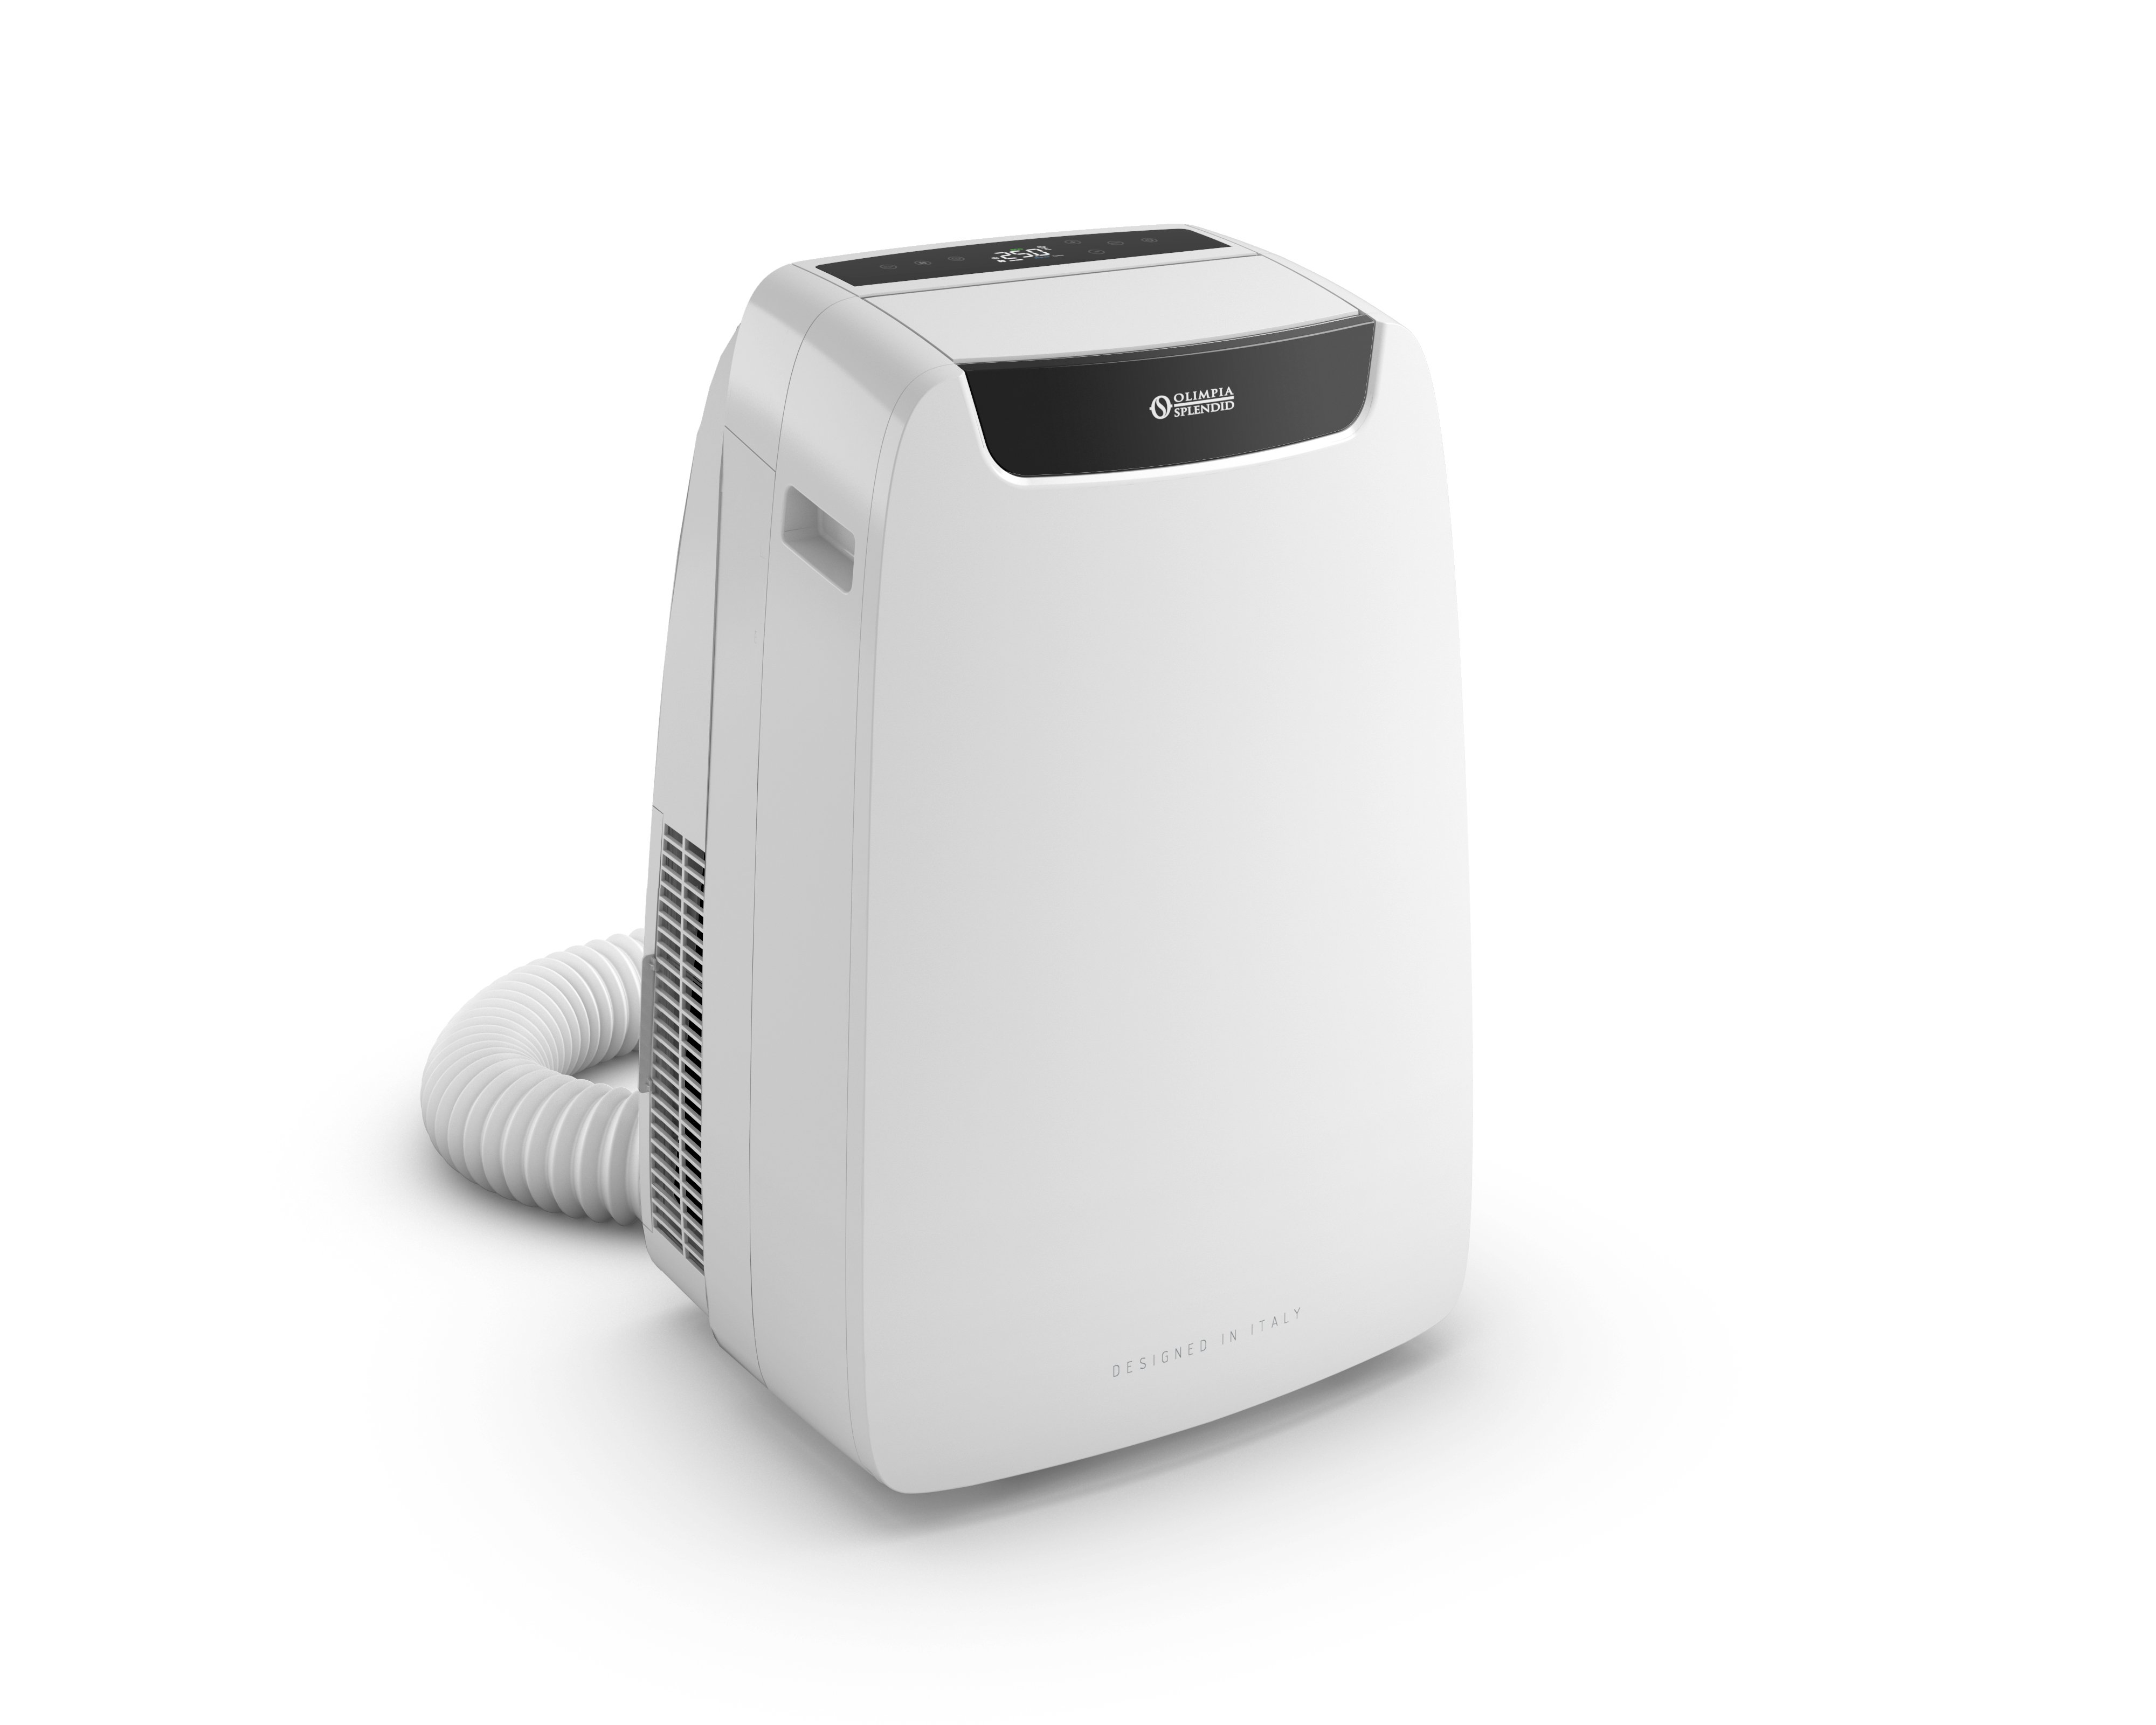 Olimpia Splendid 1910 14000 BTU Portable Air Conditioner & Dehumidifier